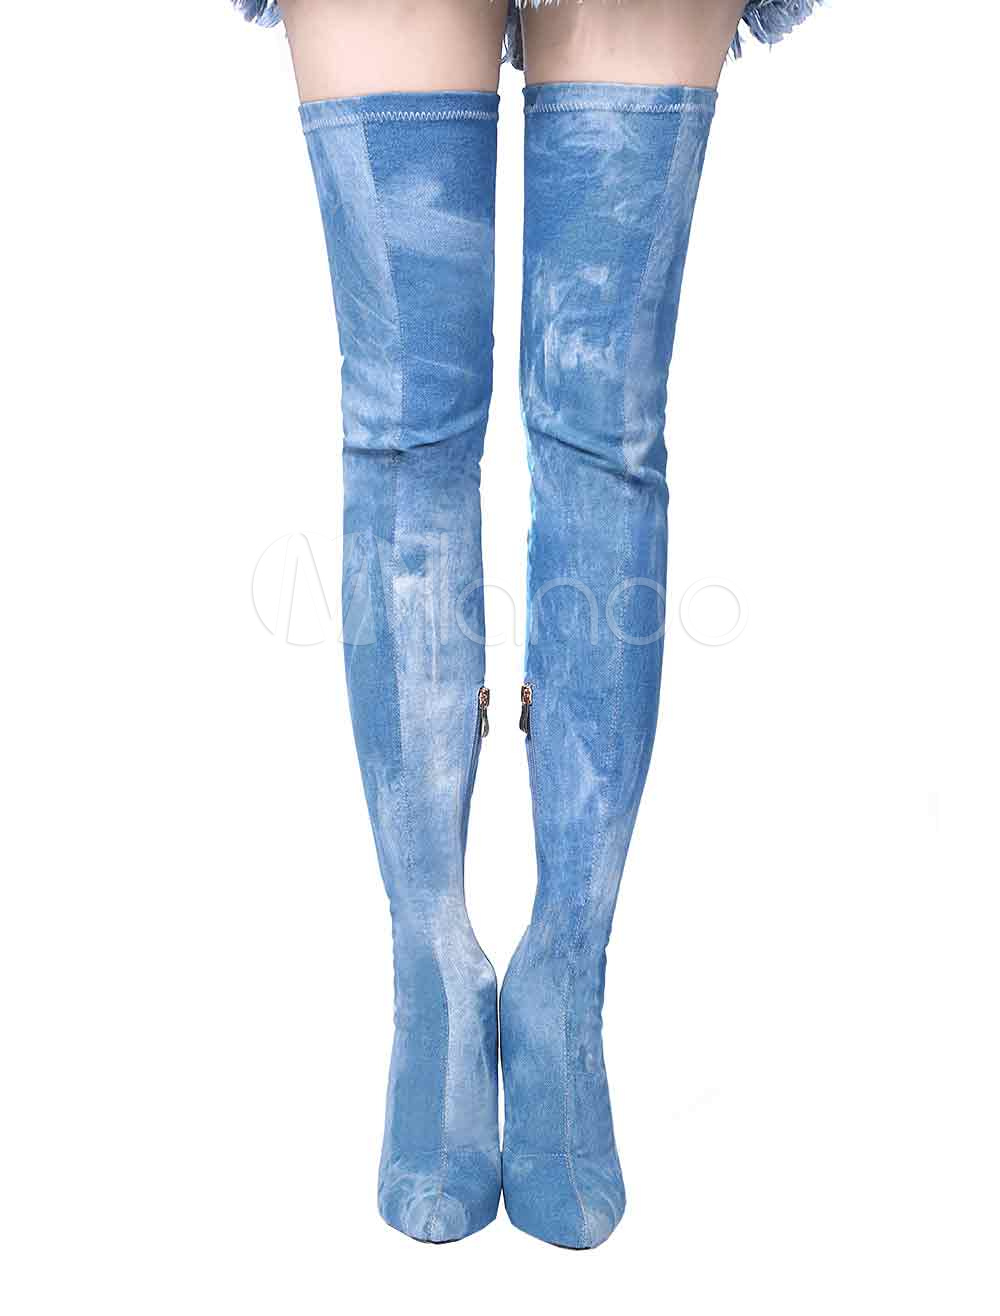 Blue Stretch Boots High Heel Women's Over Knee Pointed Toe Thigh High Boots